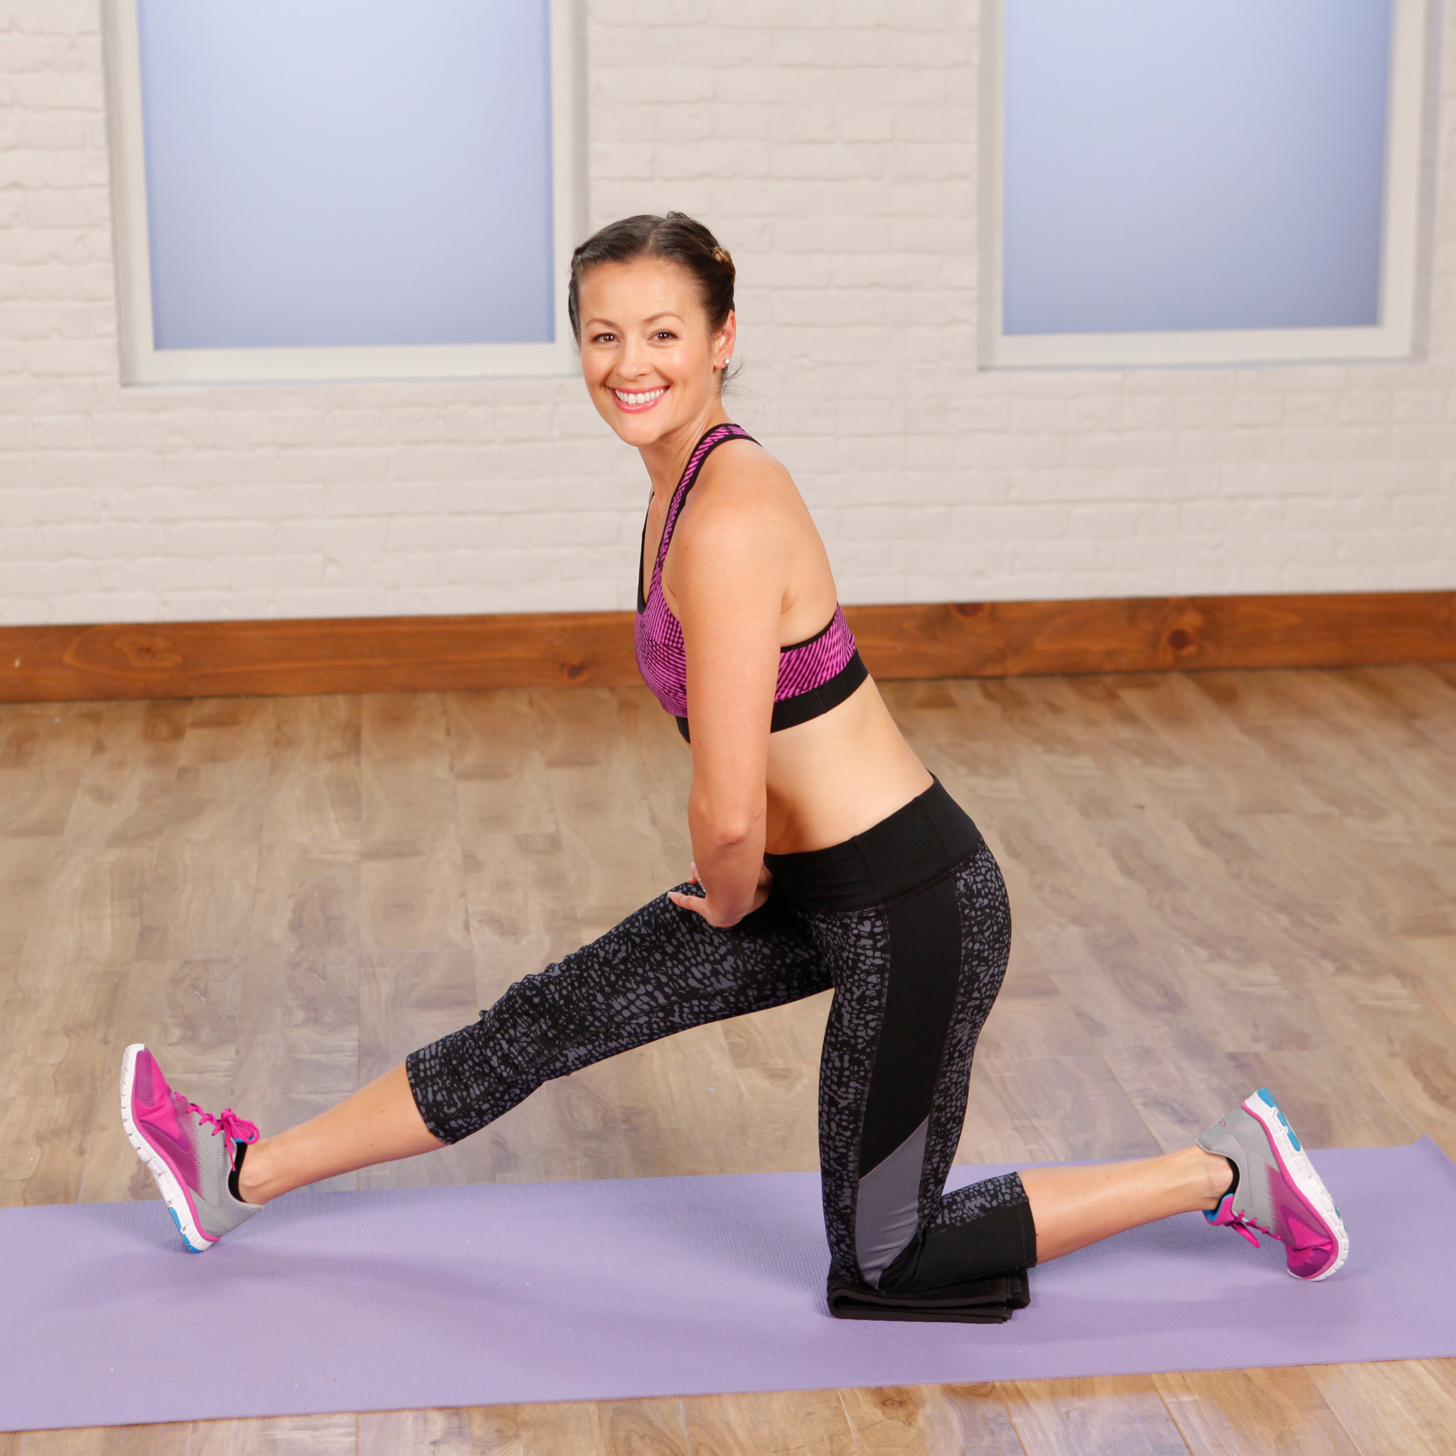 2 Essential Stretches You Need to Know